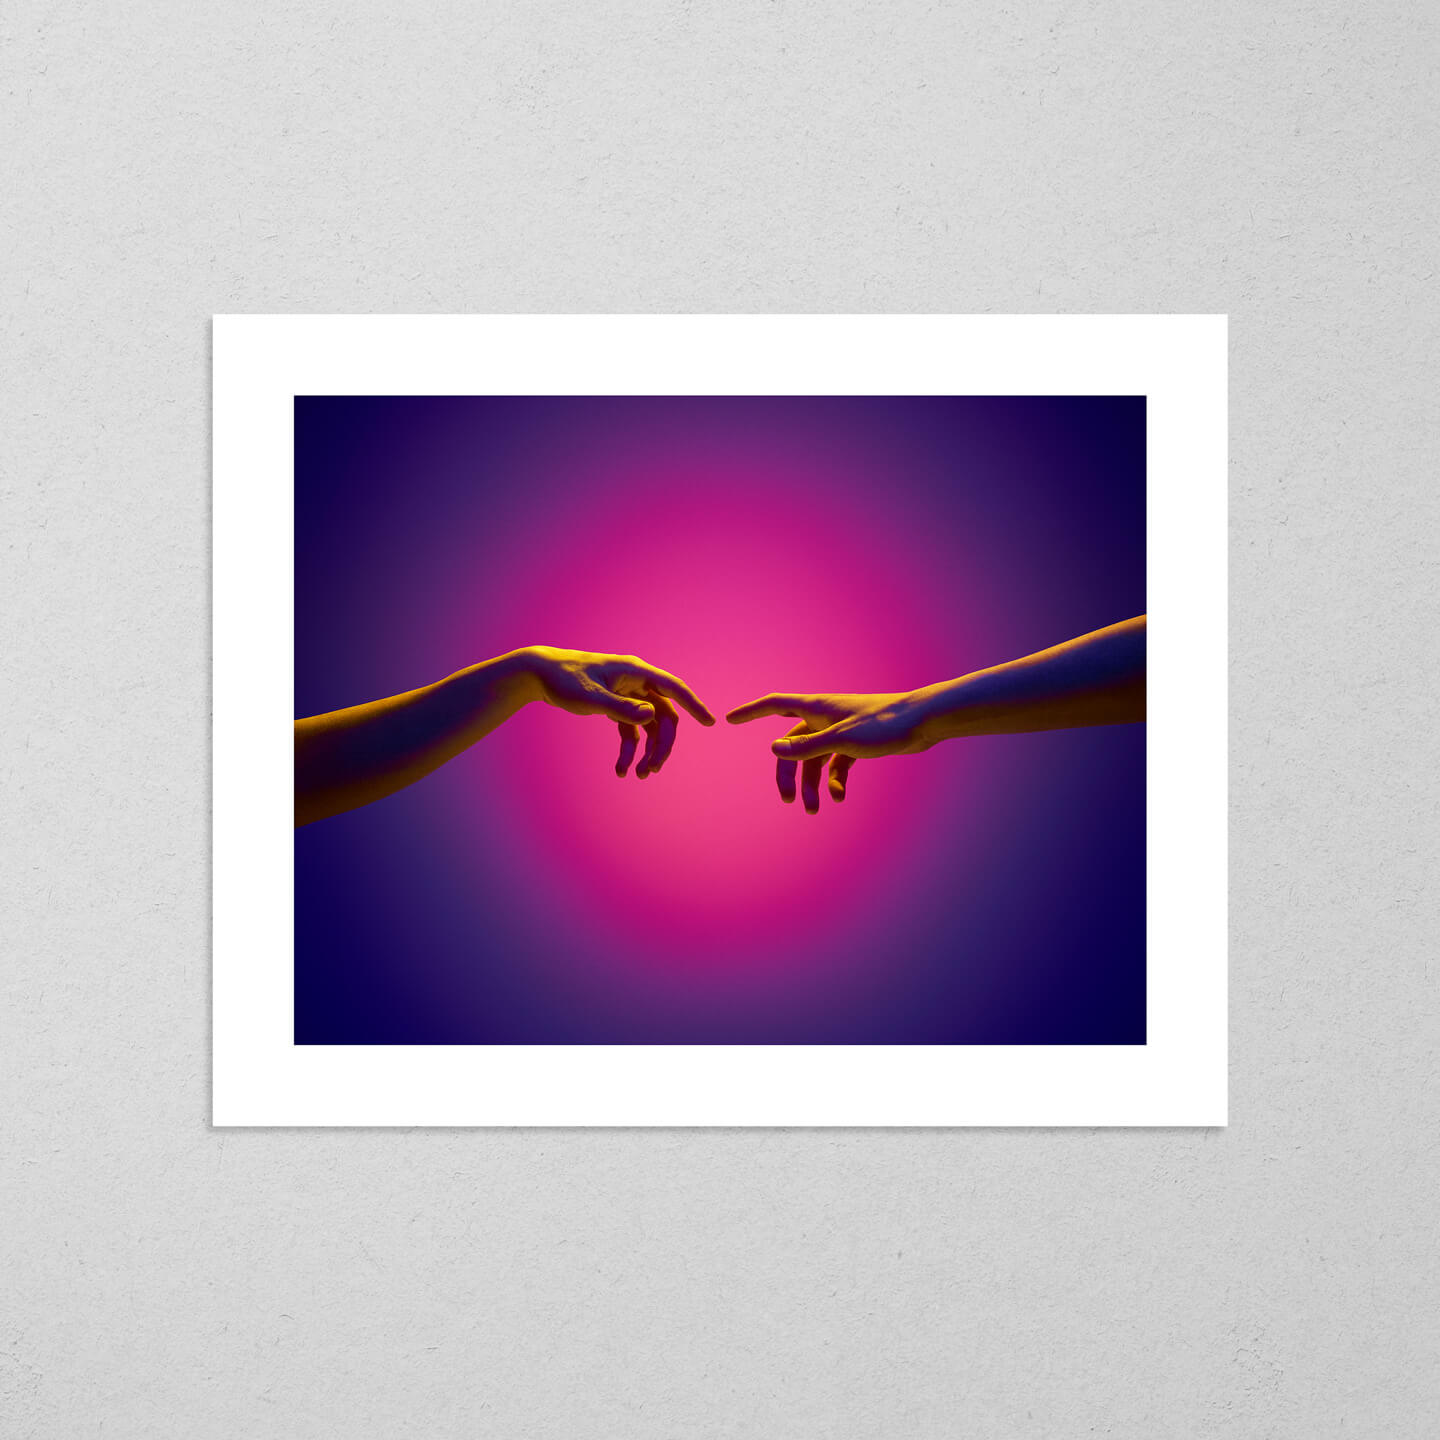 Soon Every Touch Will Be Divine (Alternate), colourful and conceptual photography fine art giclée print on Hahnemühle Pearl paper by Adrian Wojtas